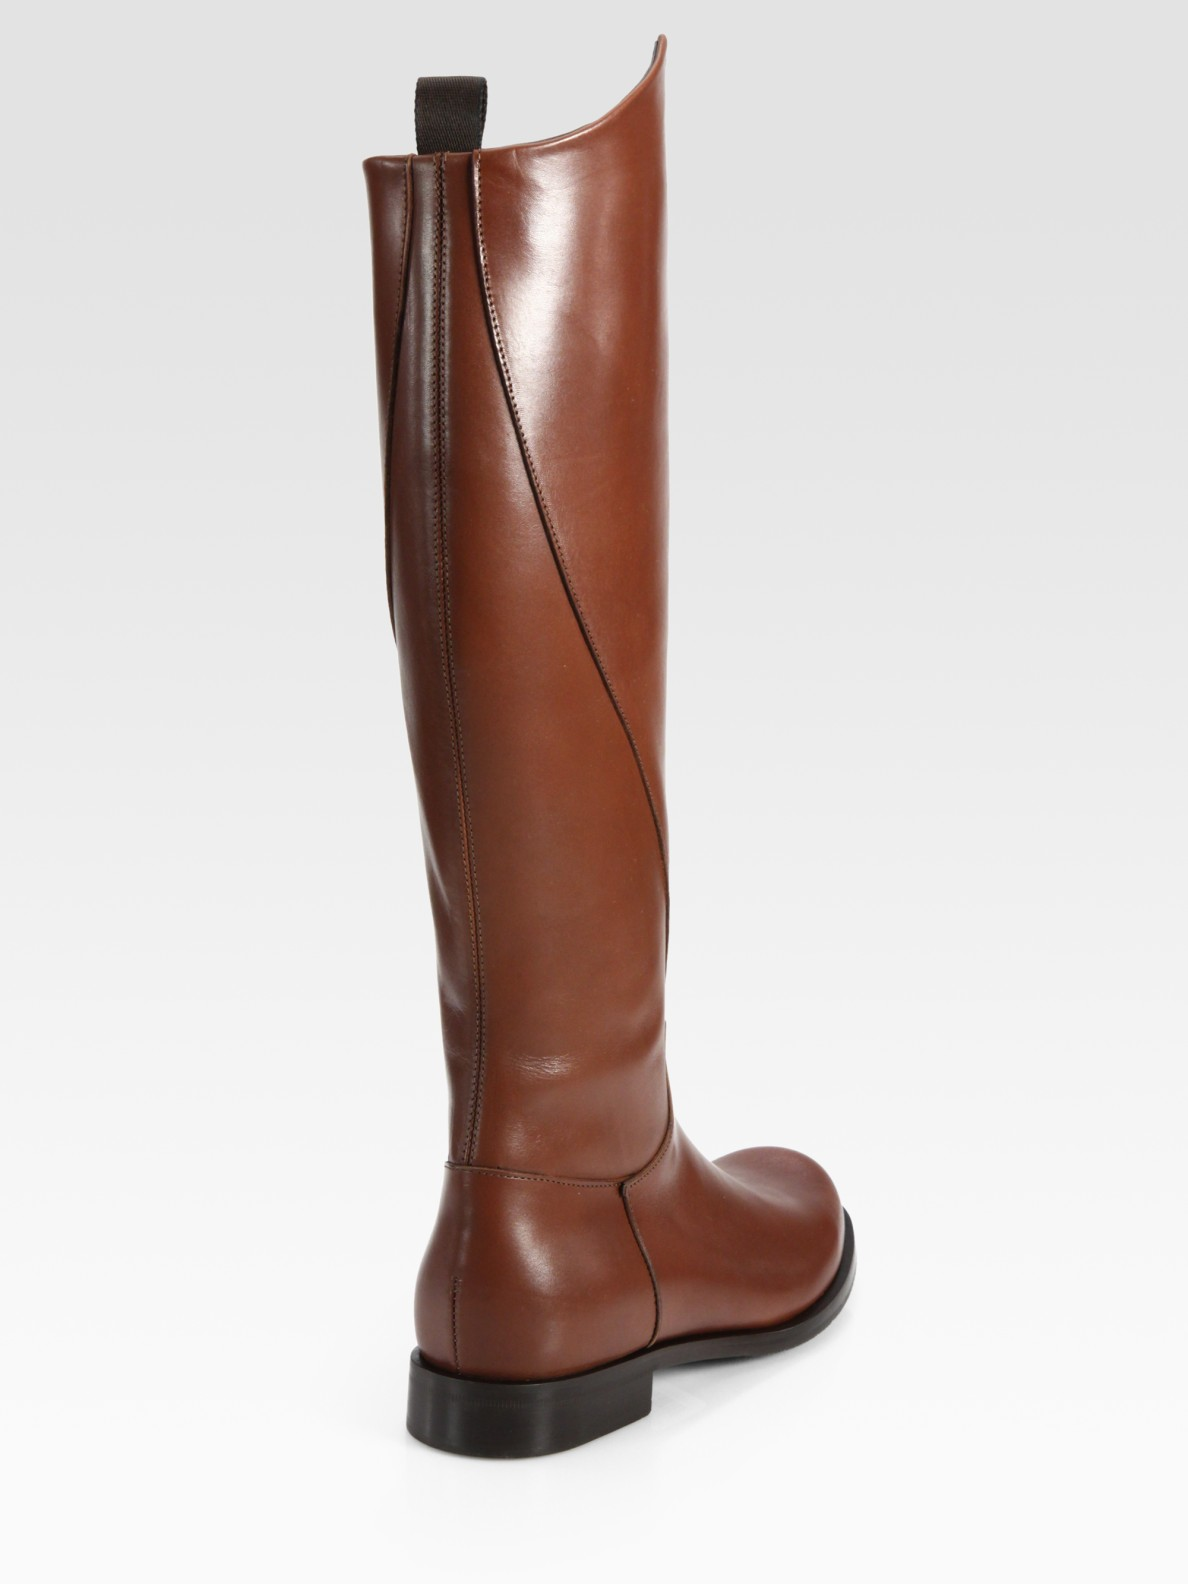 Pollini Leather Flat Knee High Riding Boots in Brown | Lyst